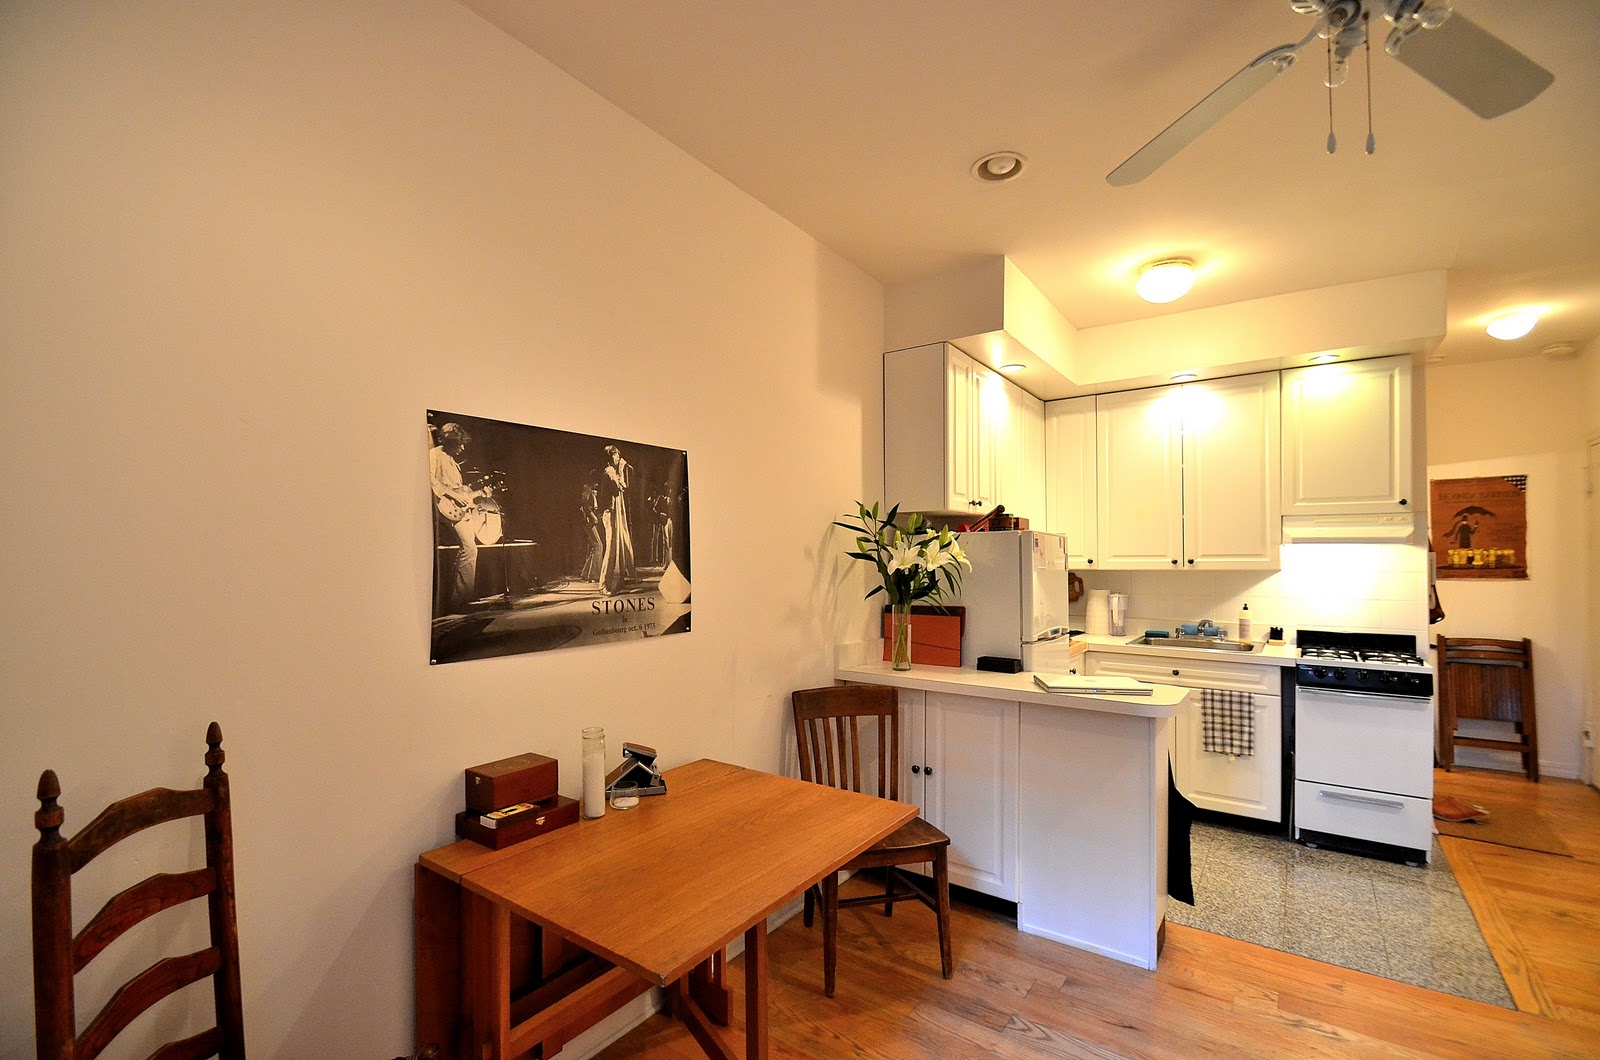 City living apt blog welcome nyc east village studio for for Rent boy new york